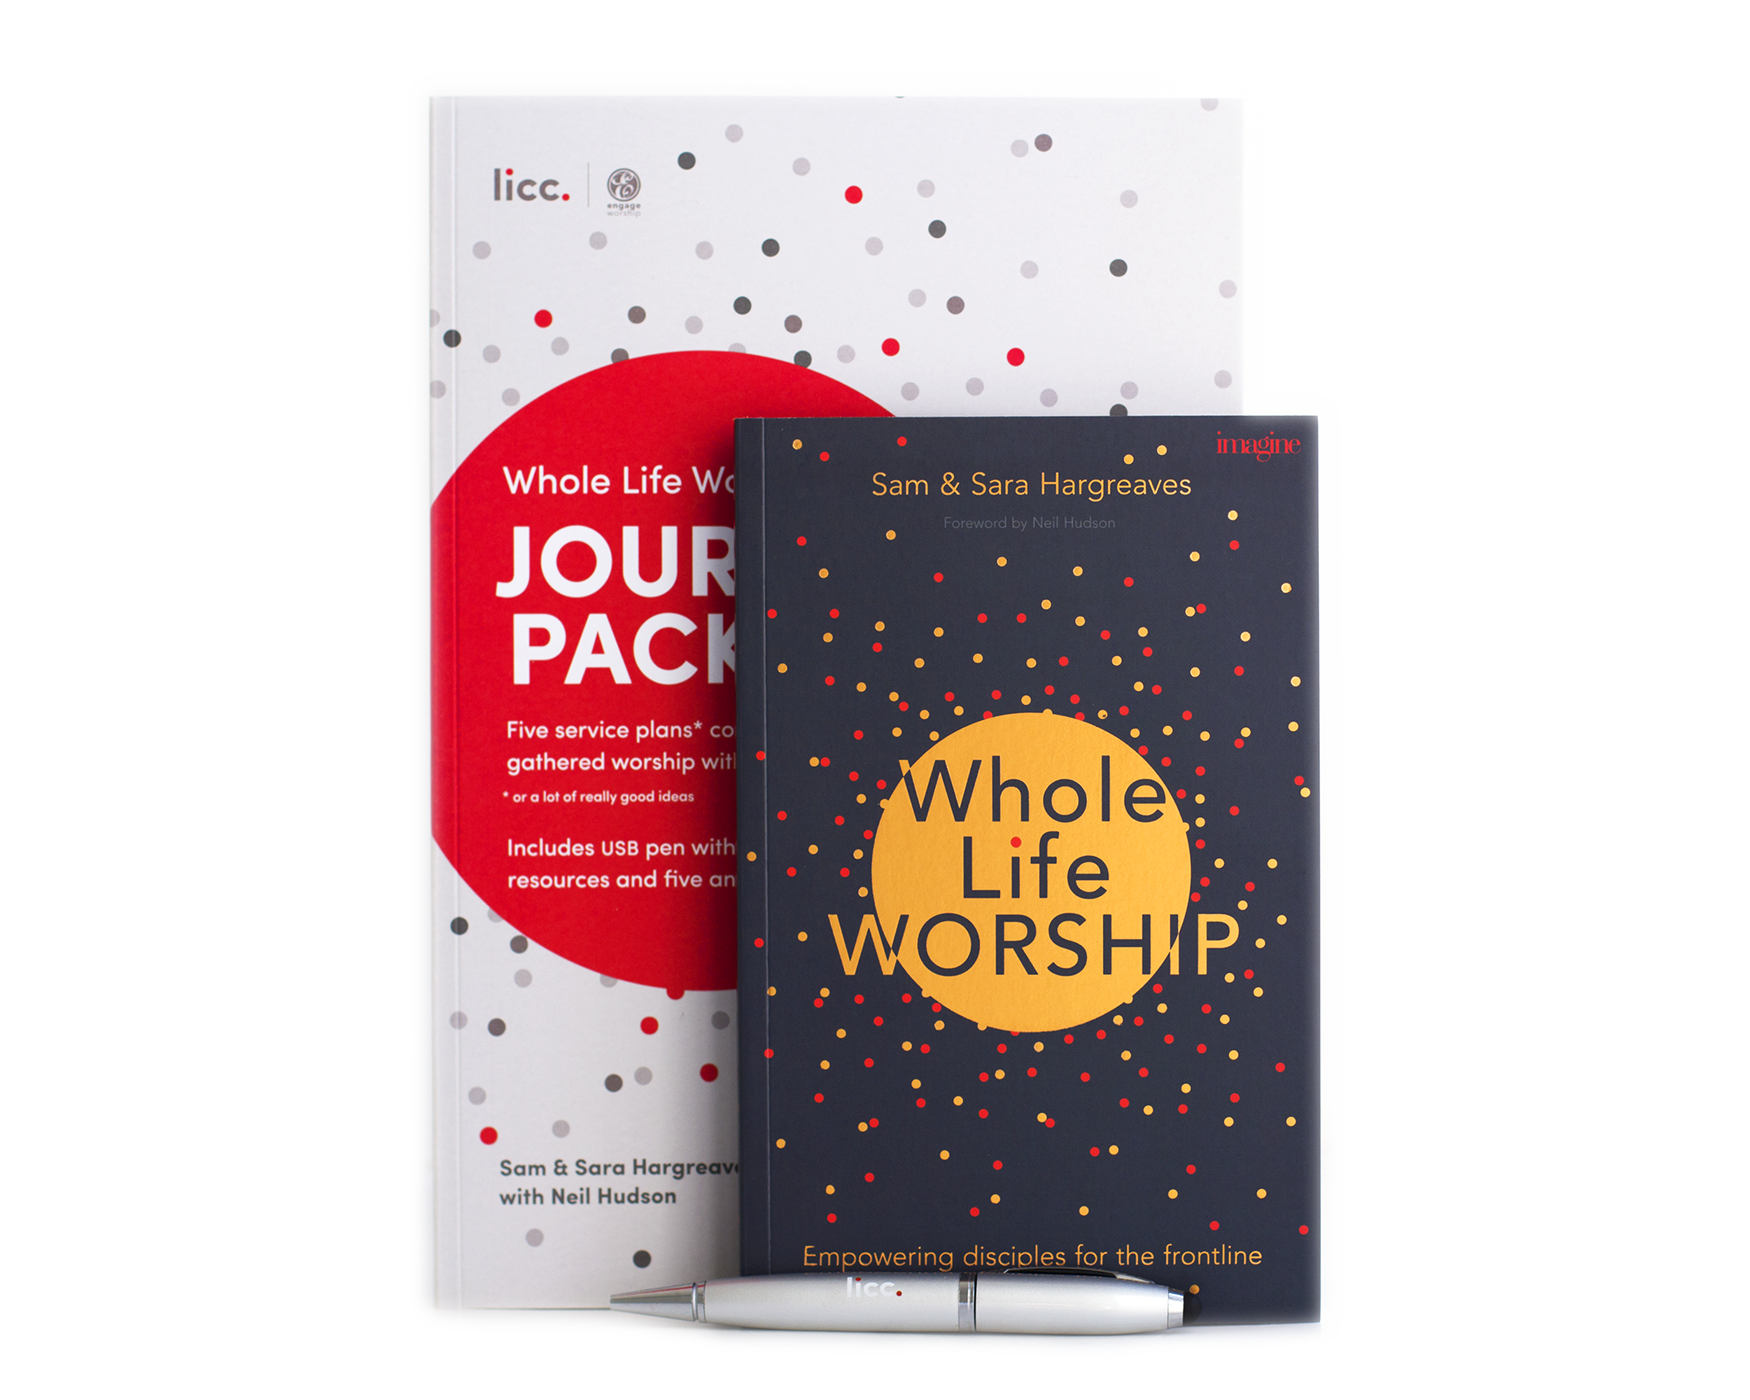 Journey pack, Book and USB pen all pictured together